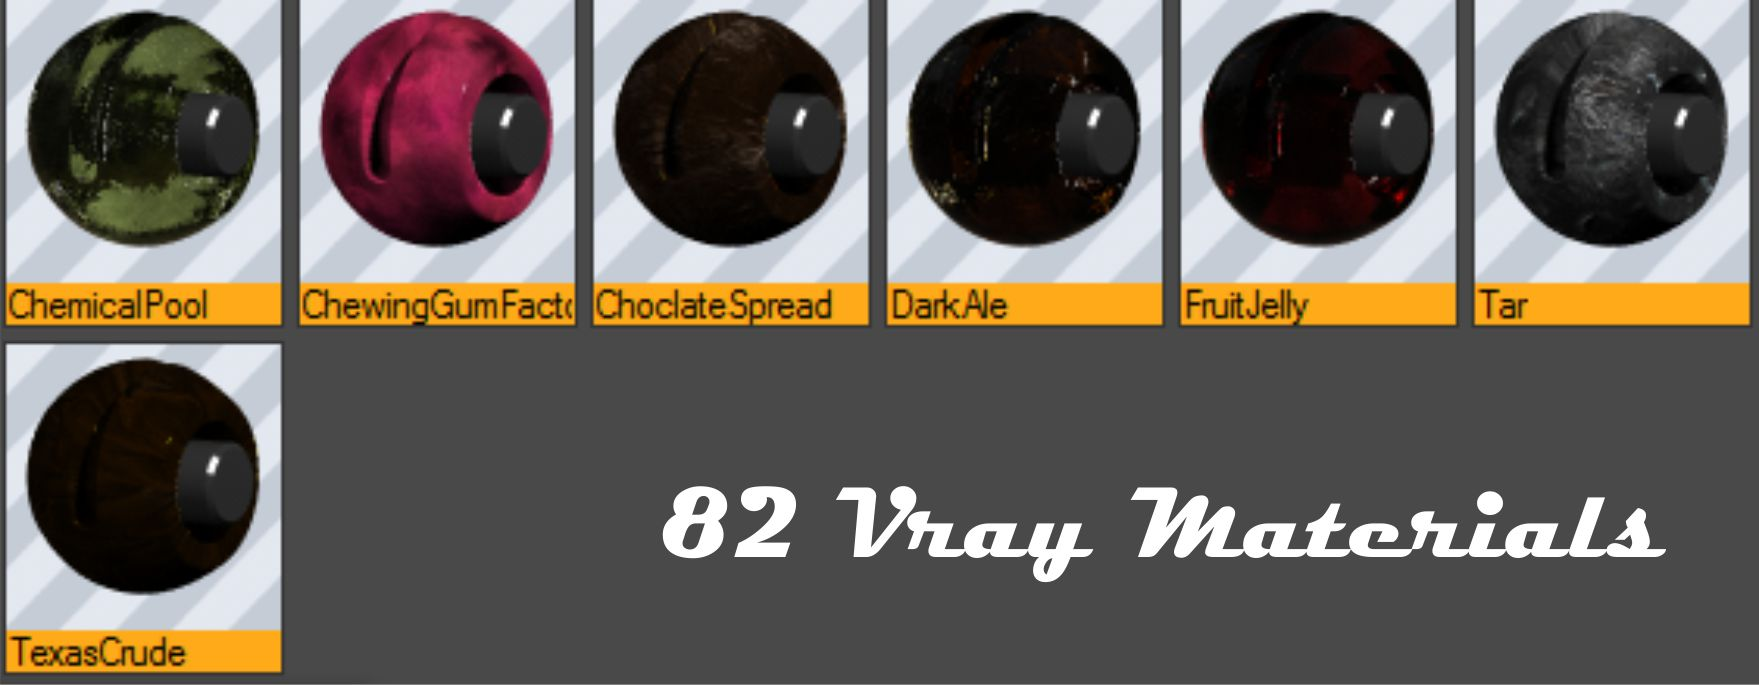 82 Vray Materials (Library) for Cinema 4D by bestm8 on